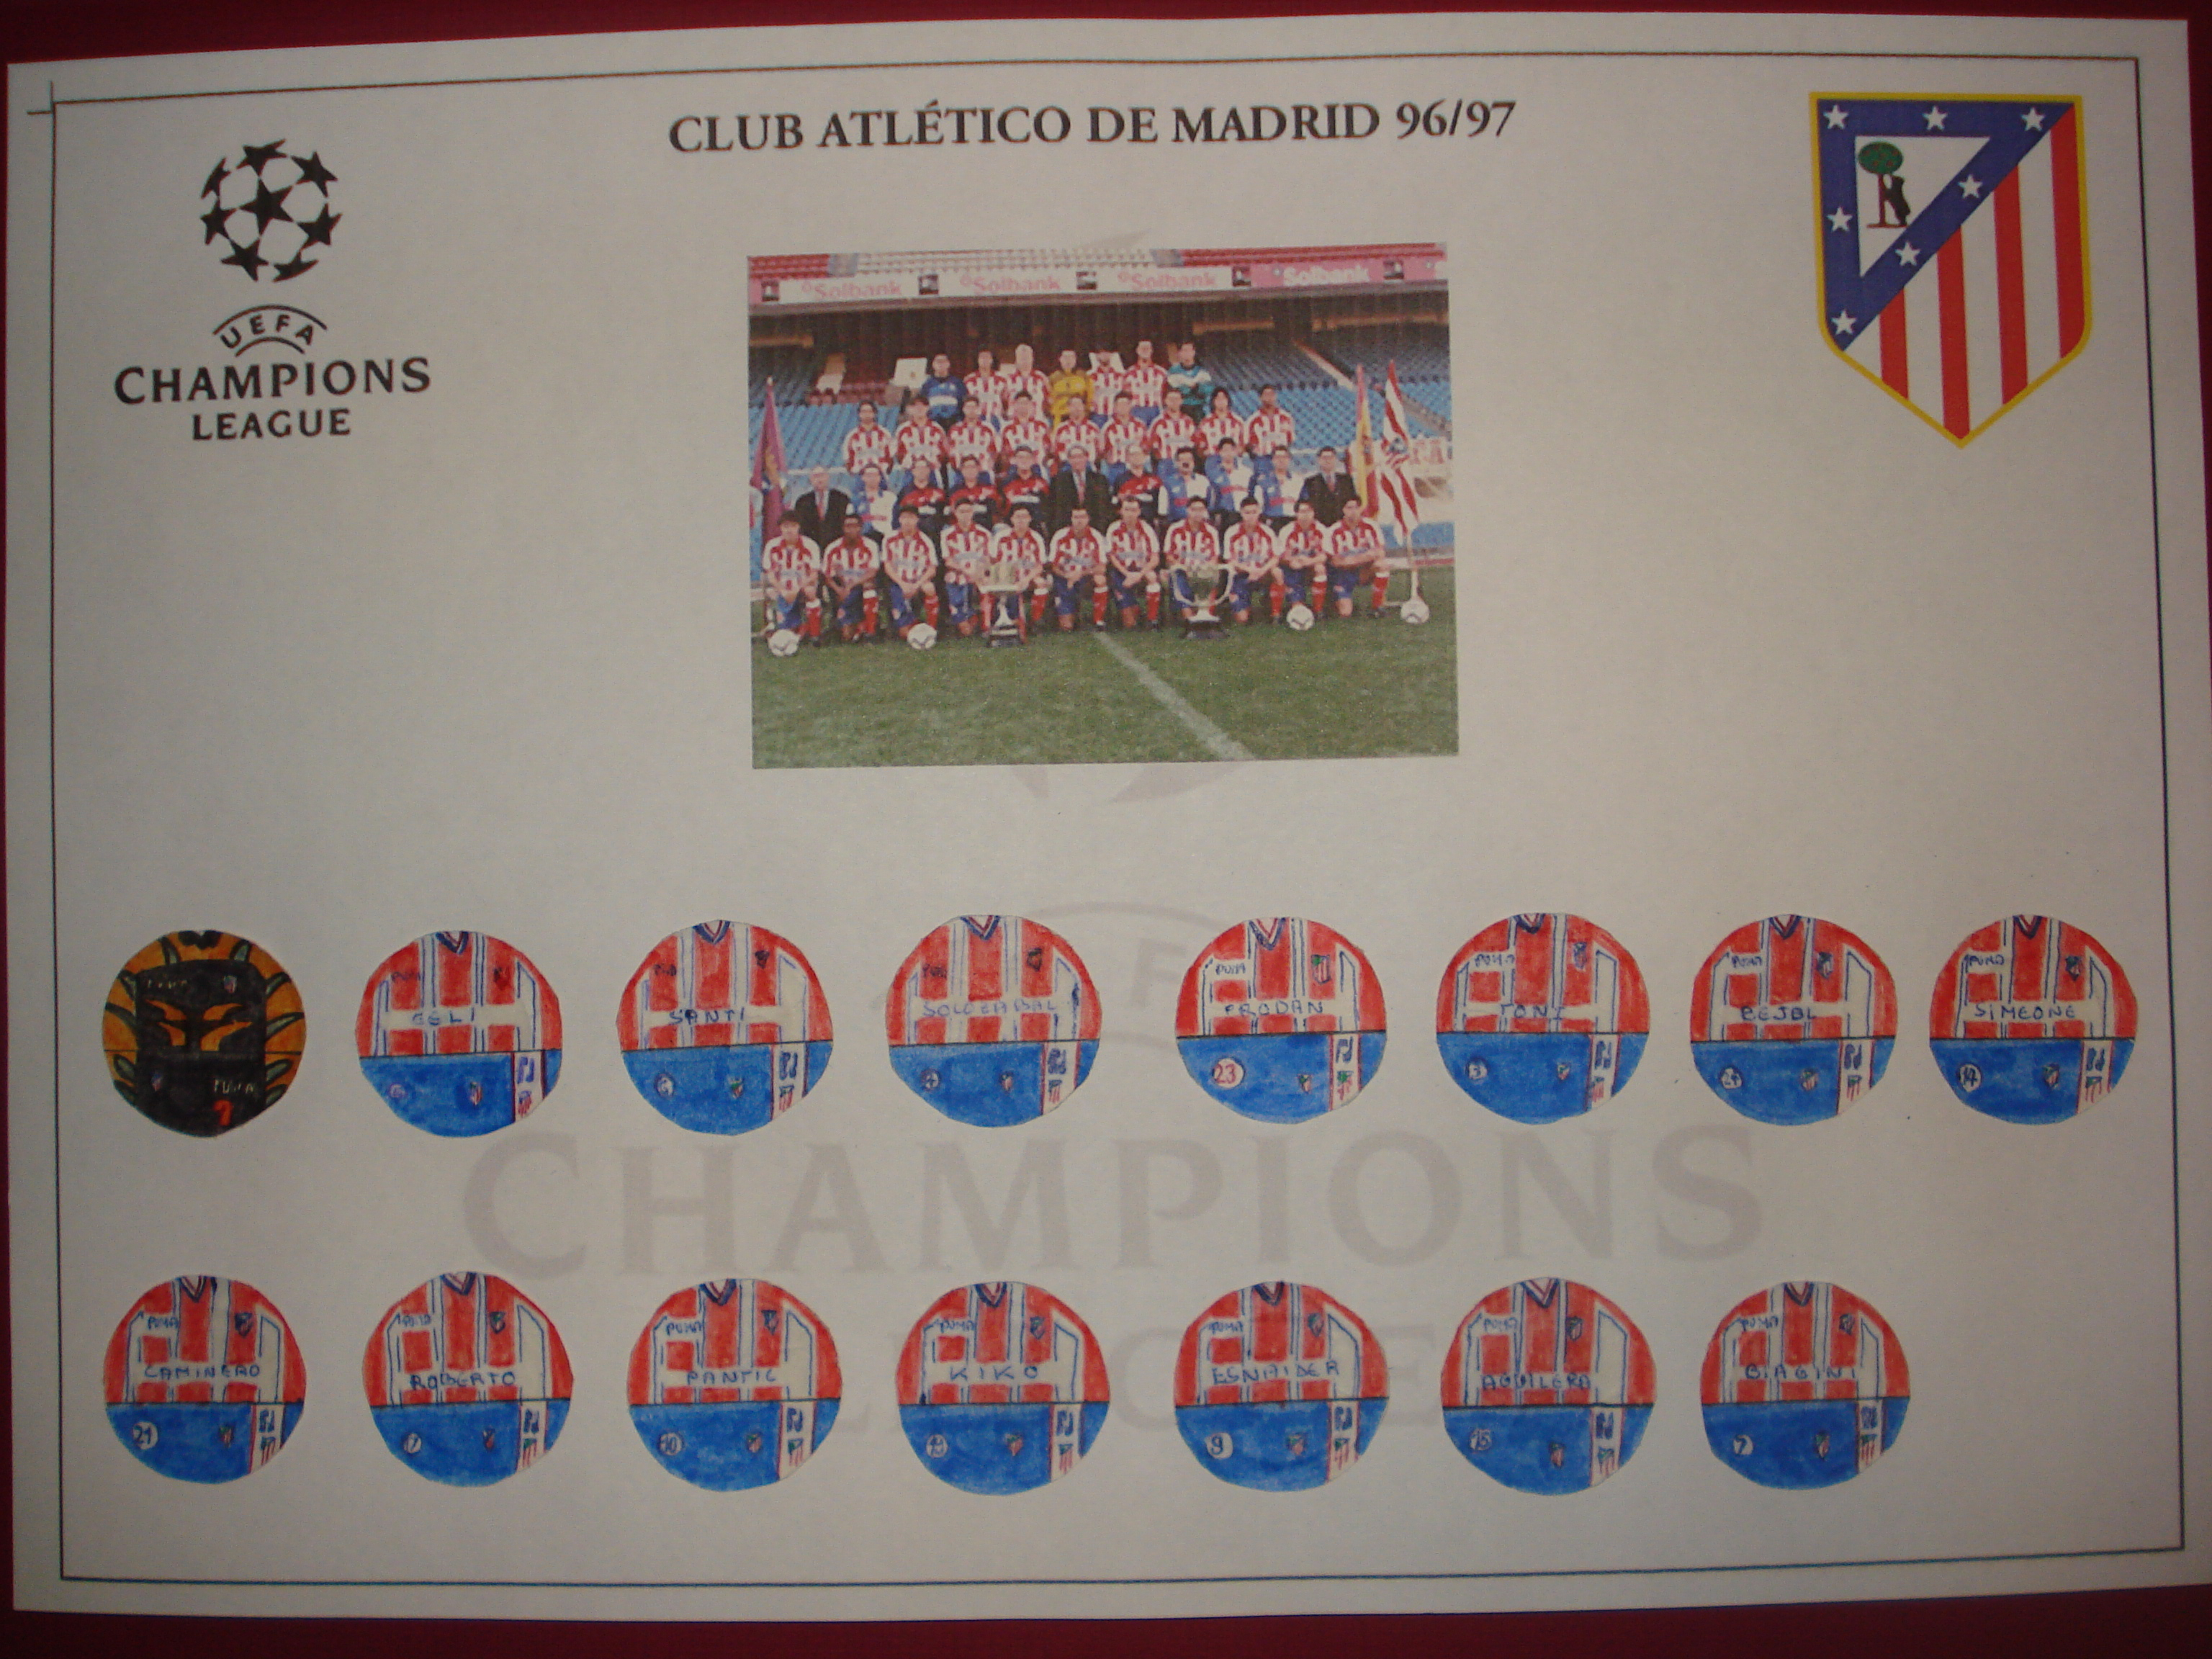 Club Atlético de Madrid 96/97 UEFA Champions League